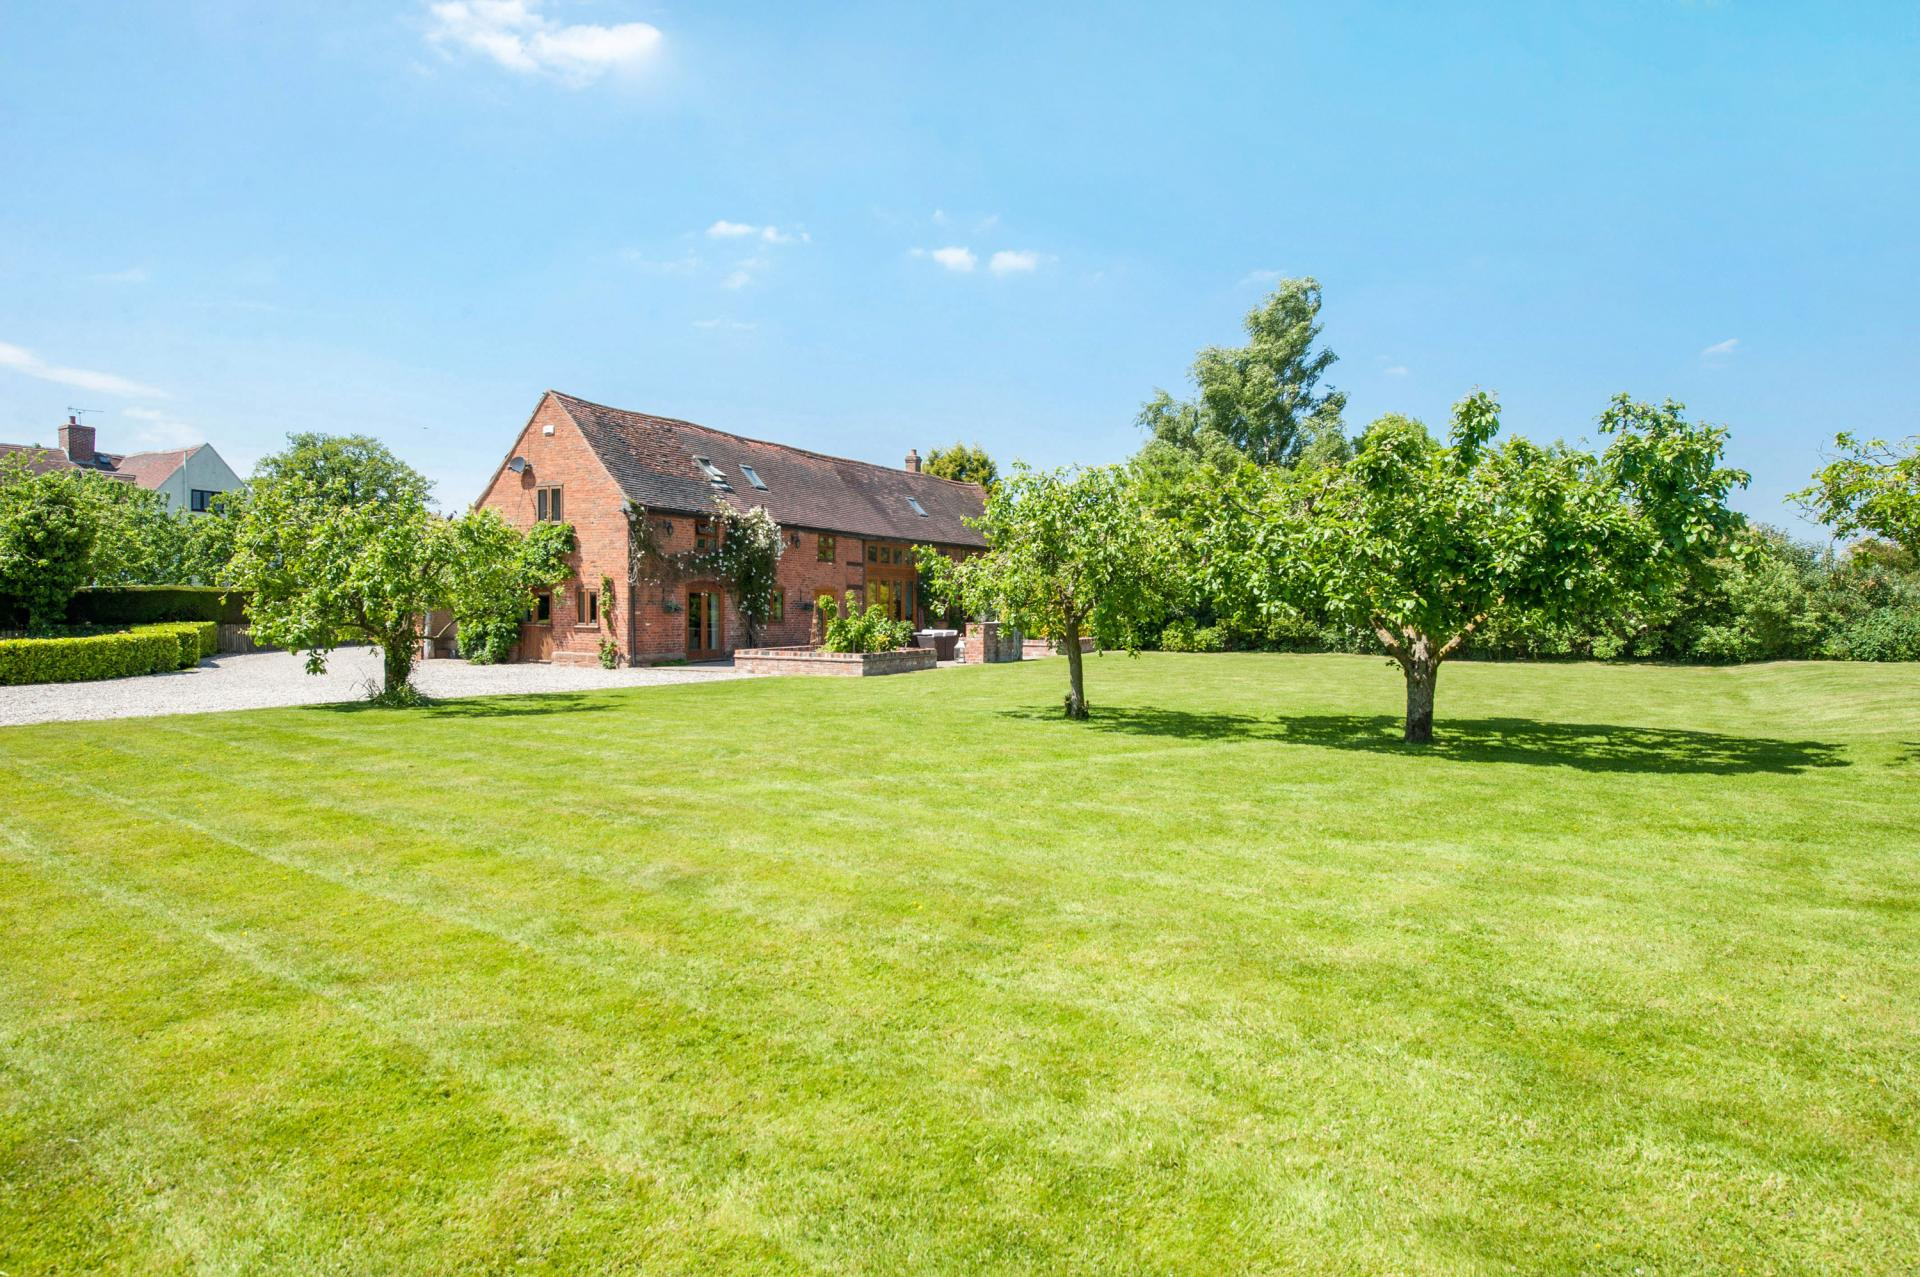 5 Bedroom Barn Conversion For Sale In Balsall Common